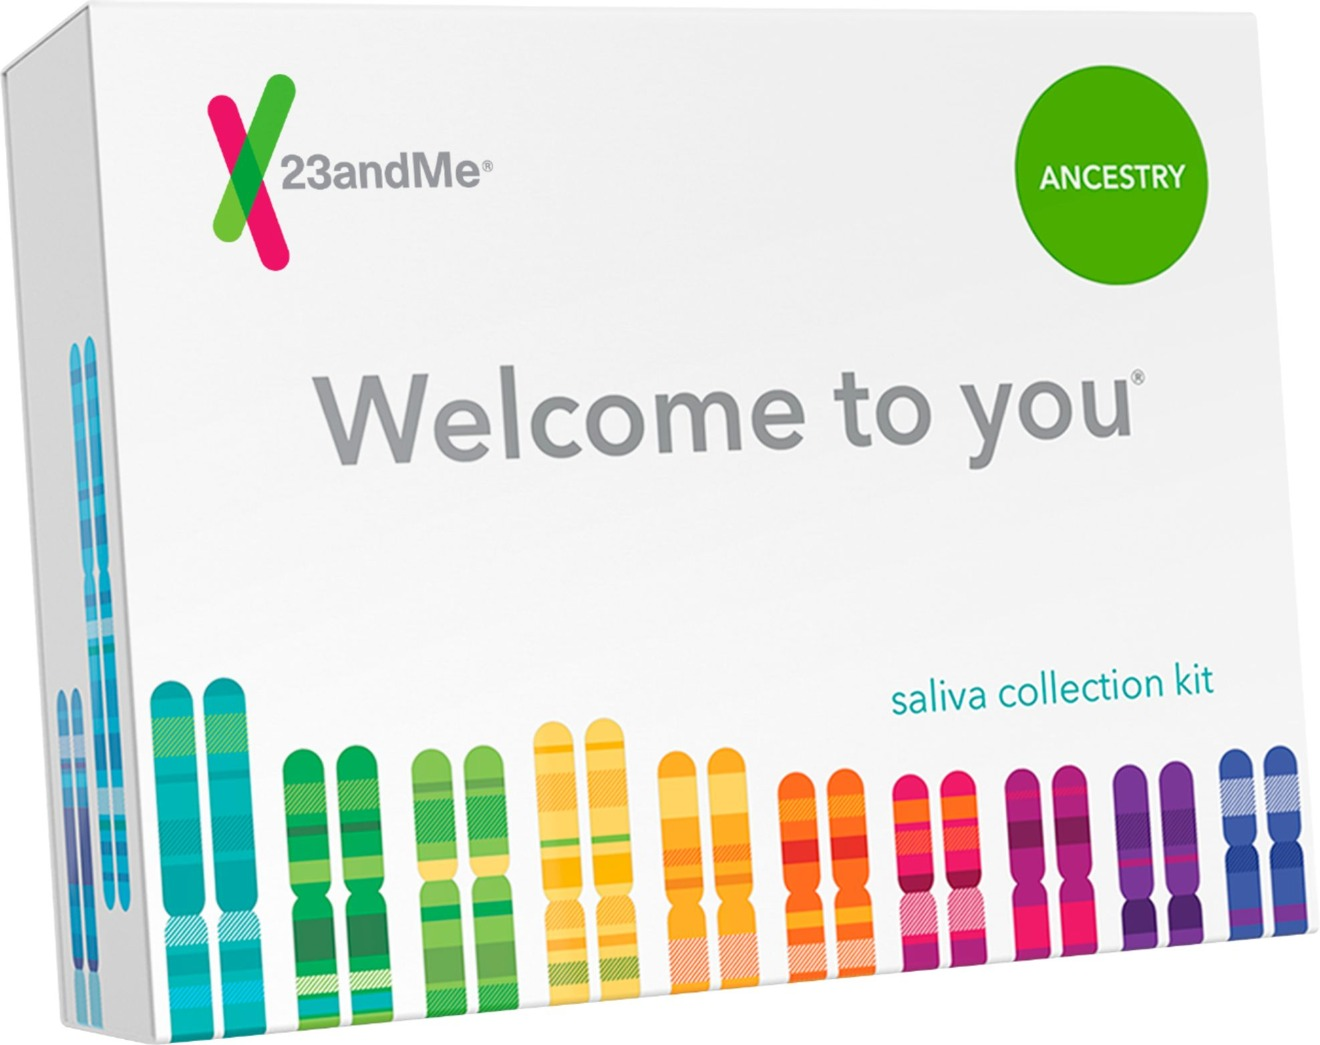 photo of 23andMe venturing onto Apple's turf with health data collection image